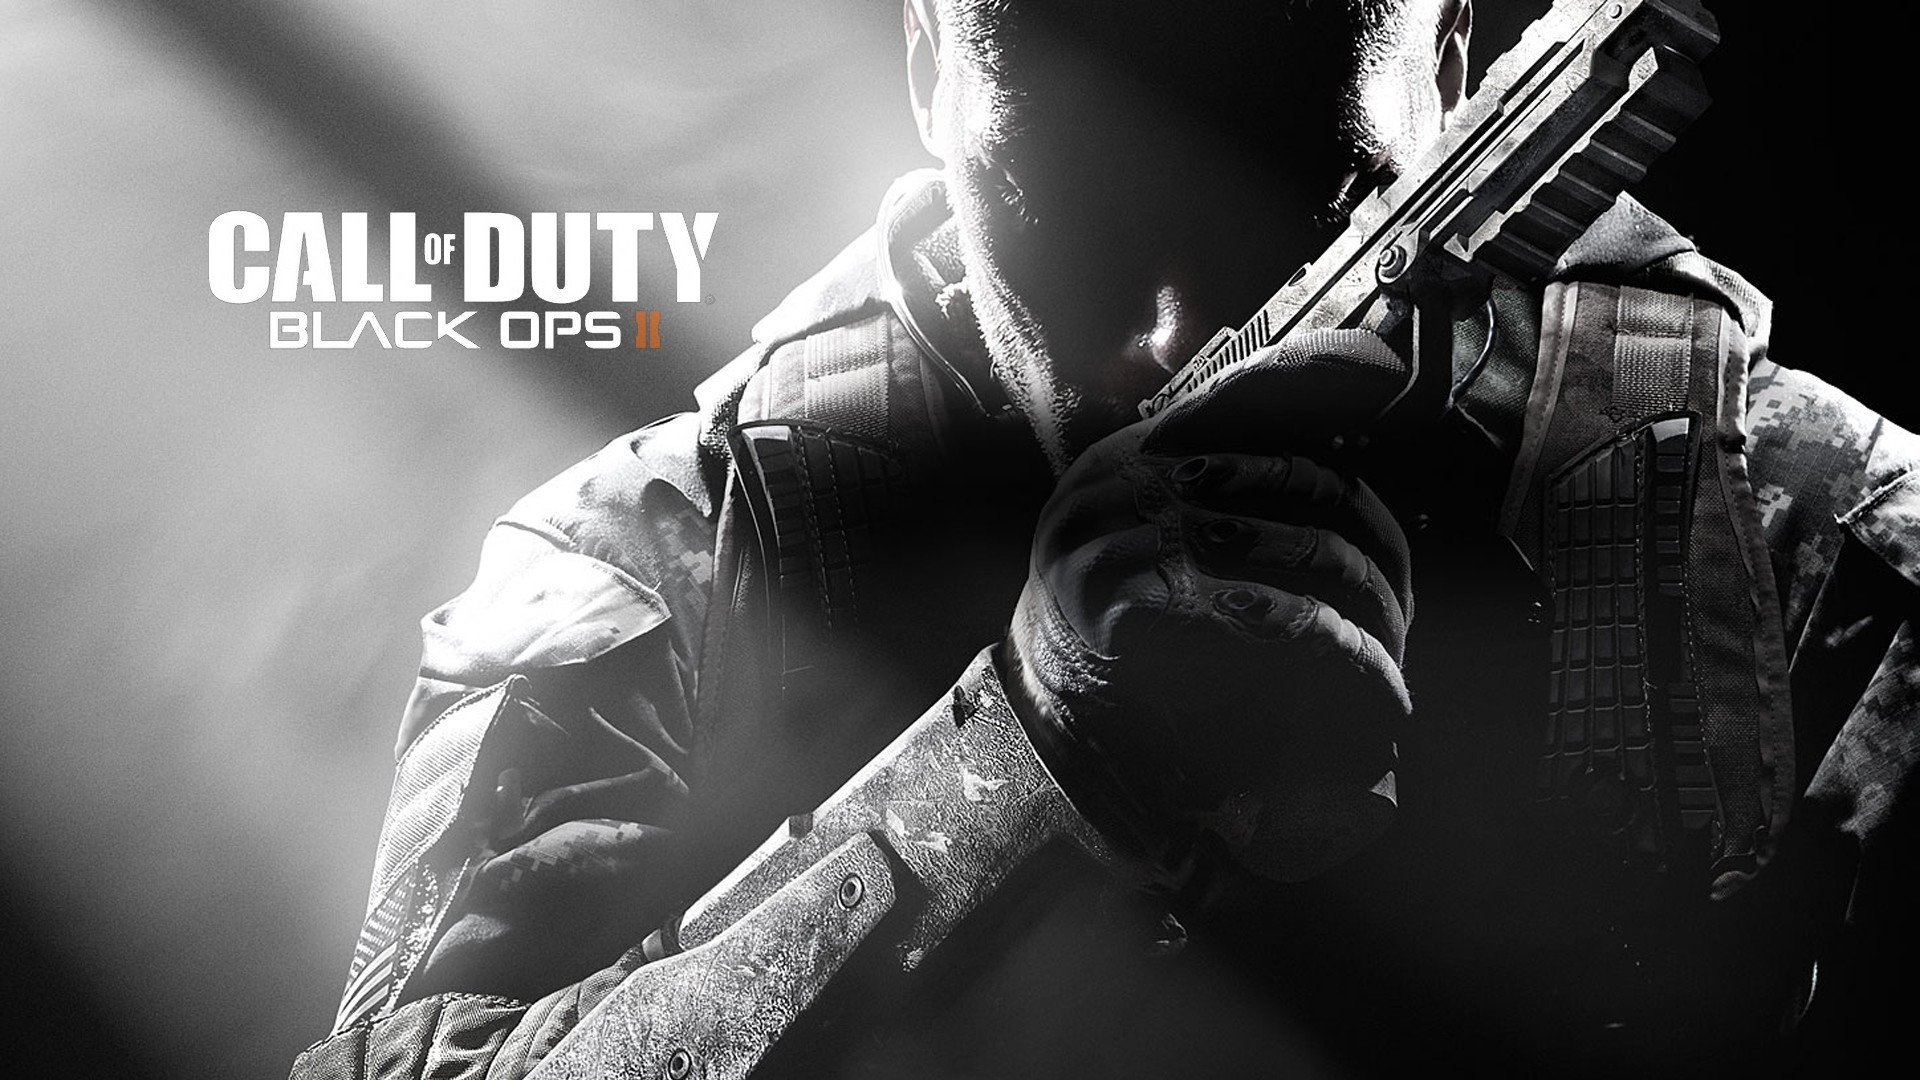 1920x1080 Call Of Duty Black Ops 2 (2048x1152 Resolution)